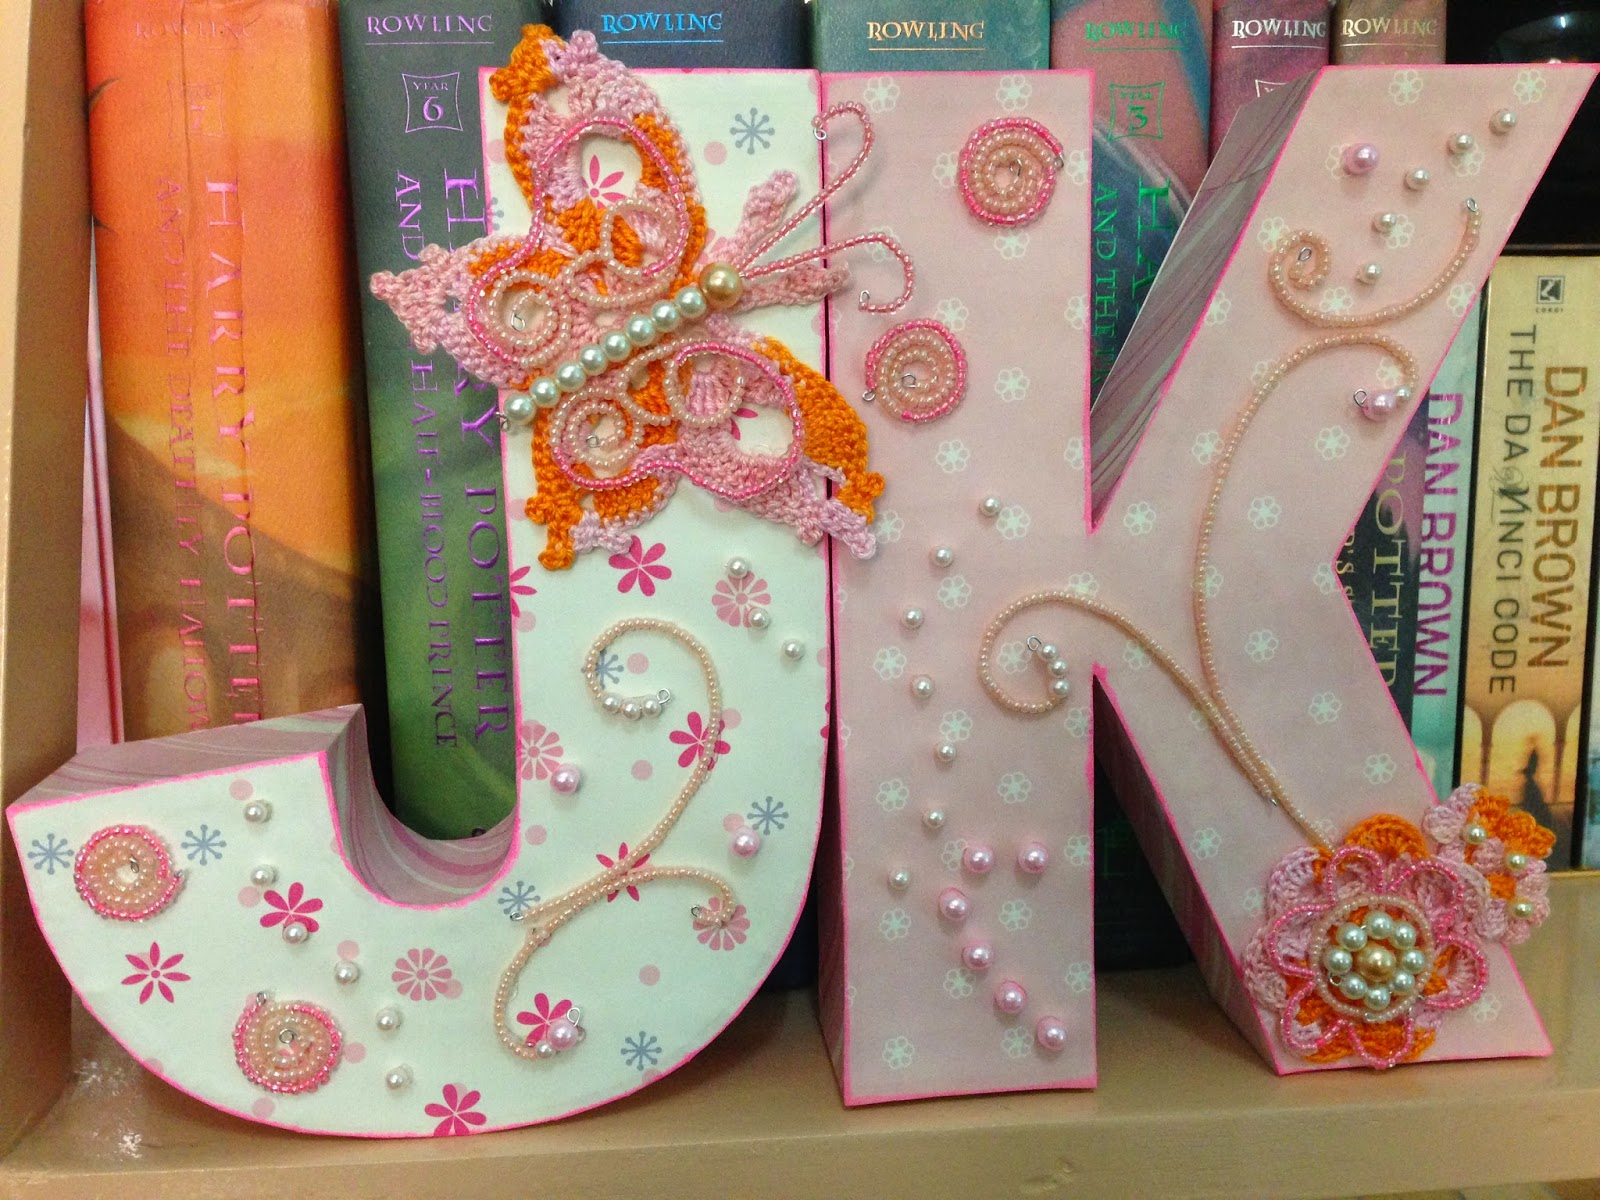 letter standees are a thing these days from wedding and birthday party decorations to kids room and nightstand display they add charm and cool vibe to